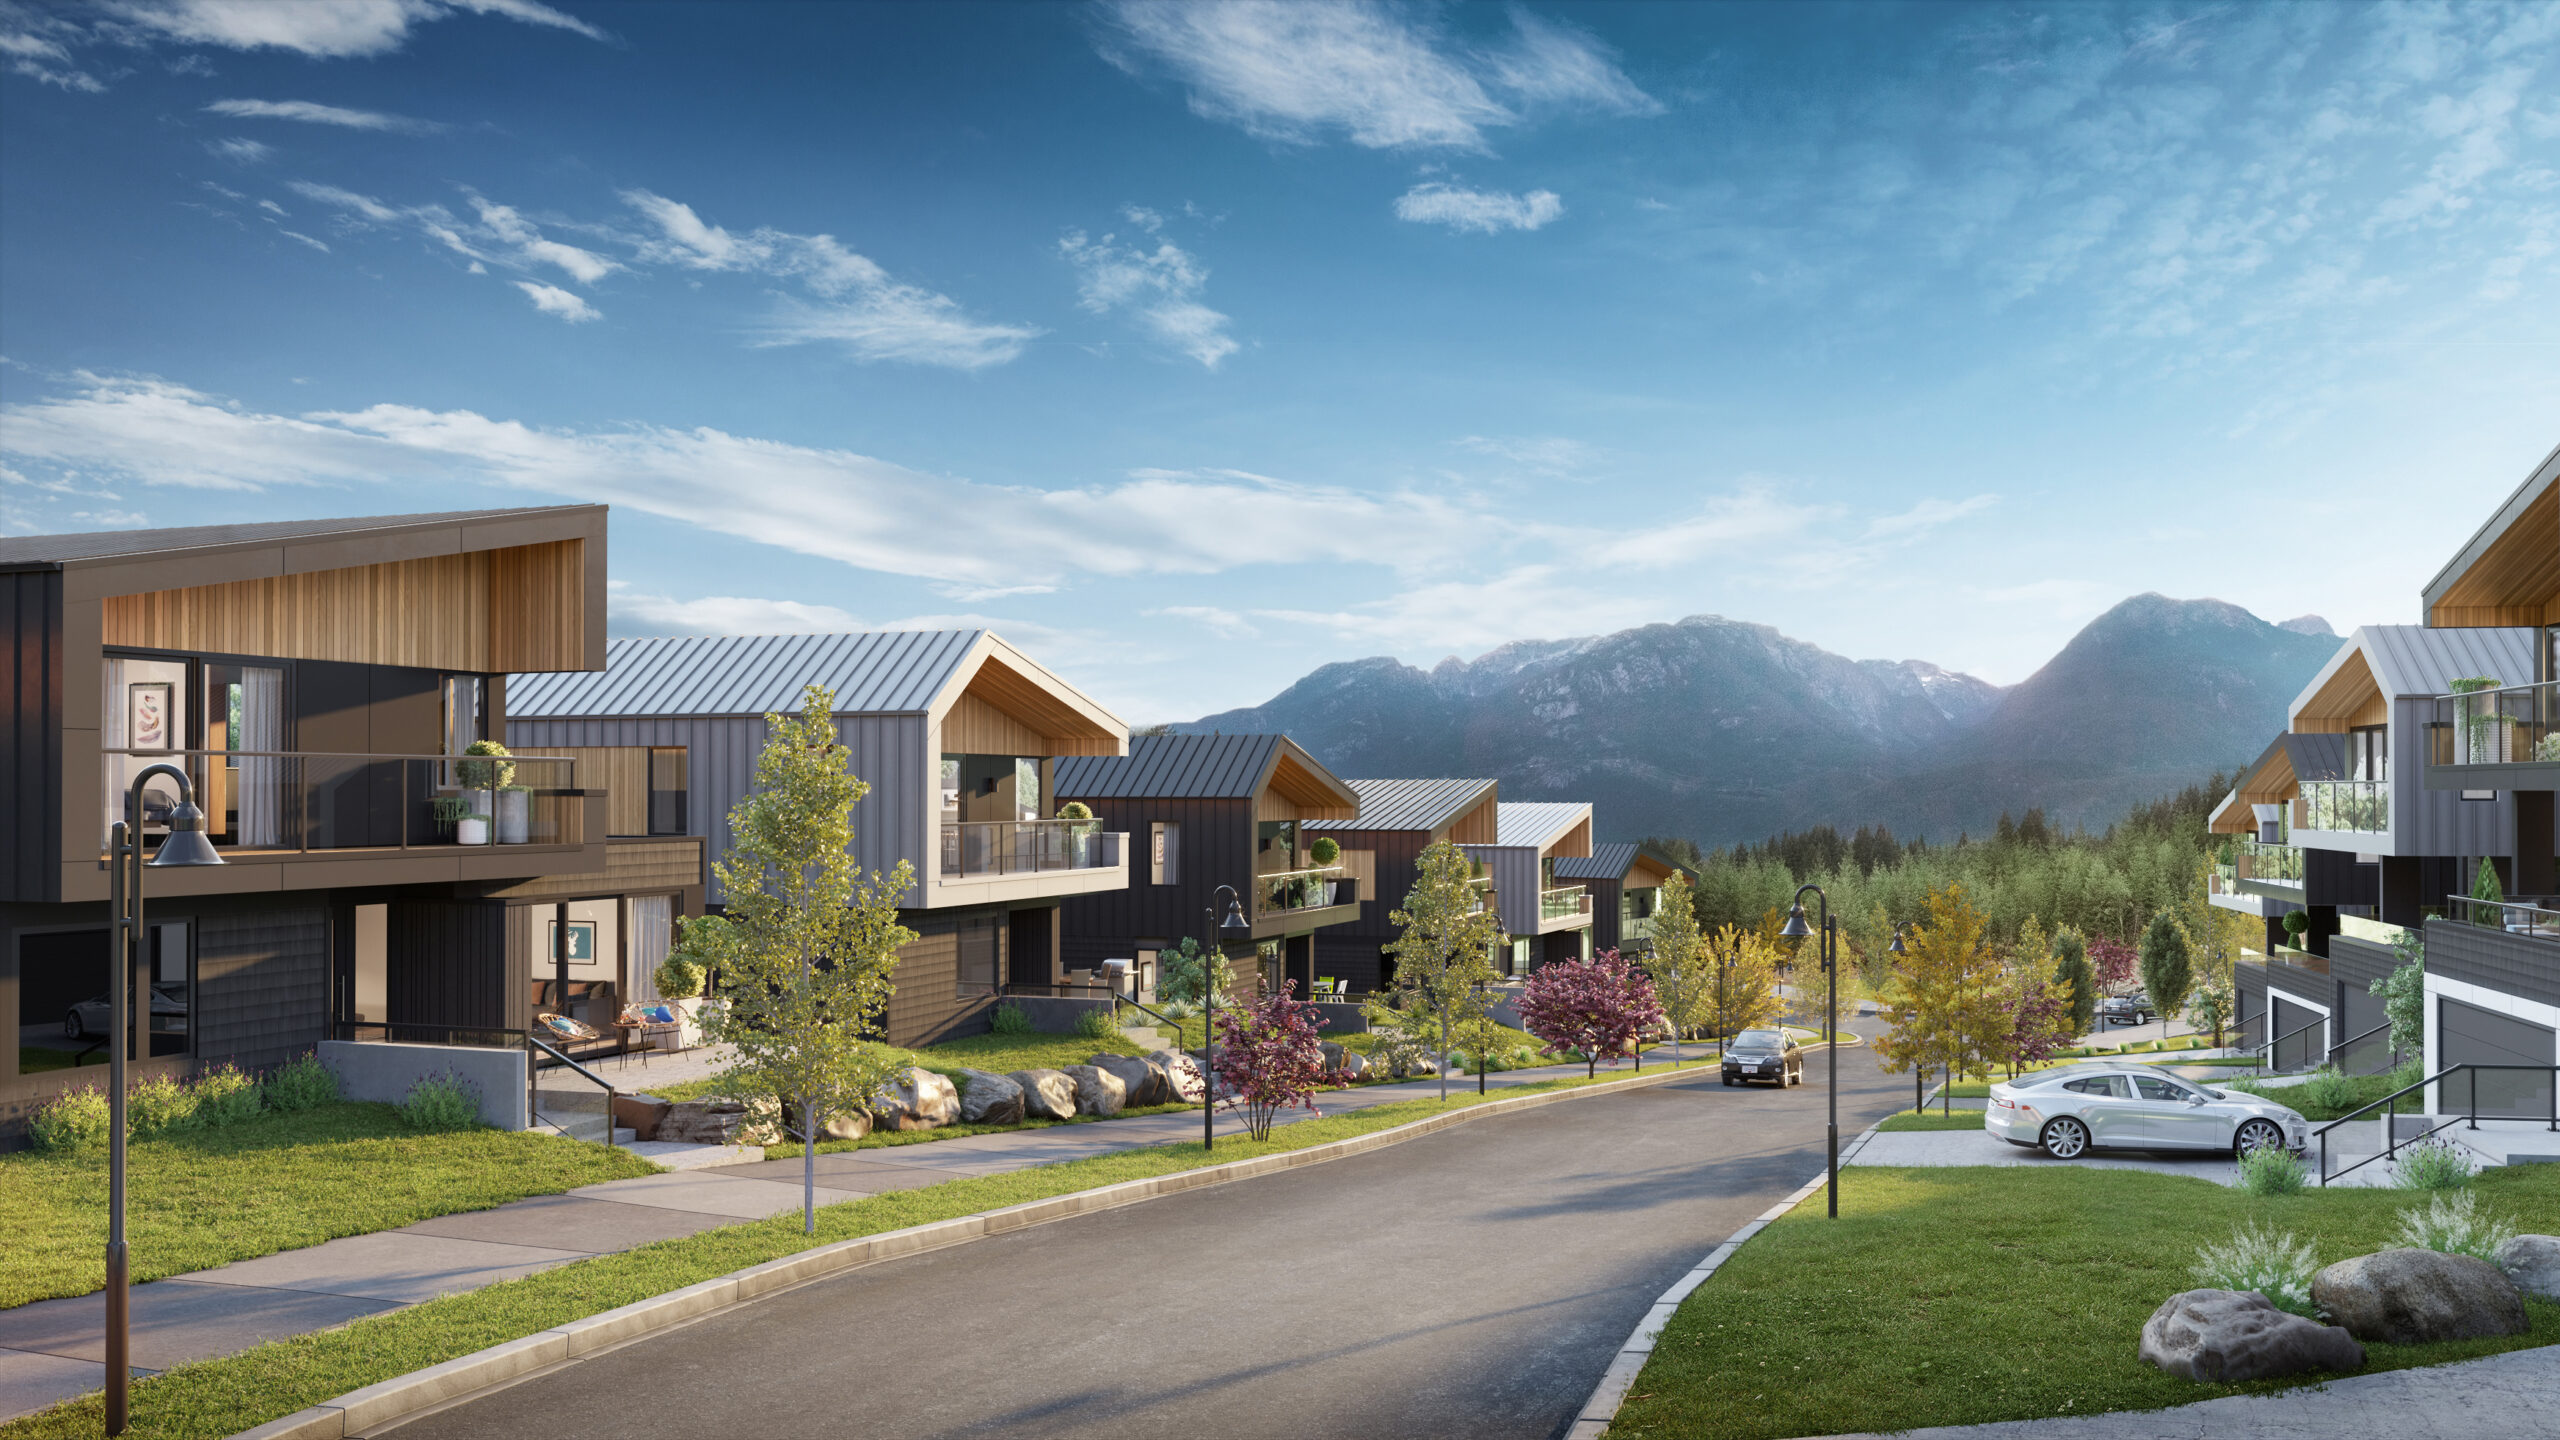 Rendering of a neighbourhood street view featuring dark and light modern homes and mountains in the background.